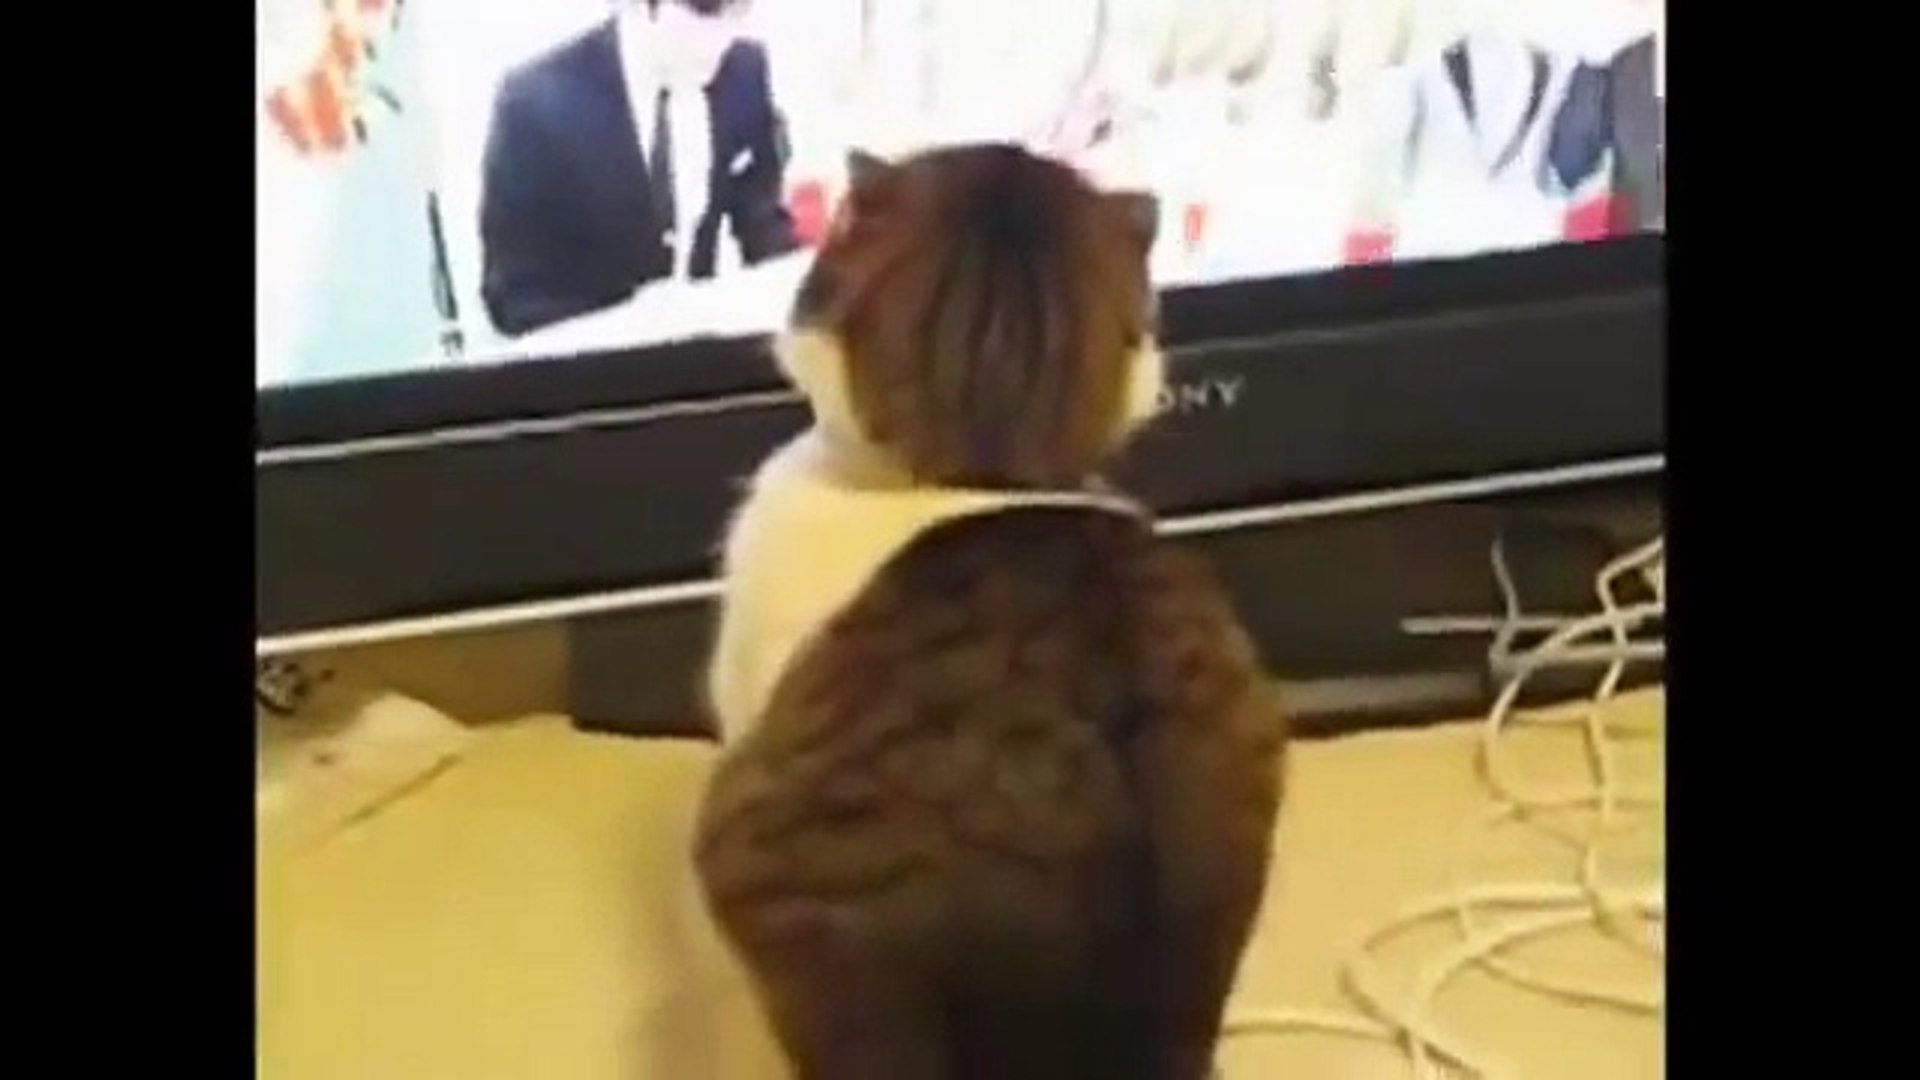 funny cats,funny cat videos,funny animals,funny video,cats funny,funny videos,funny cat